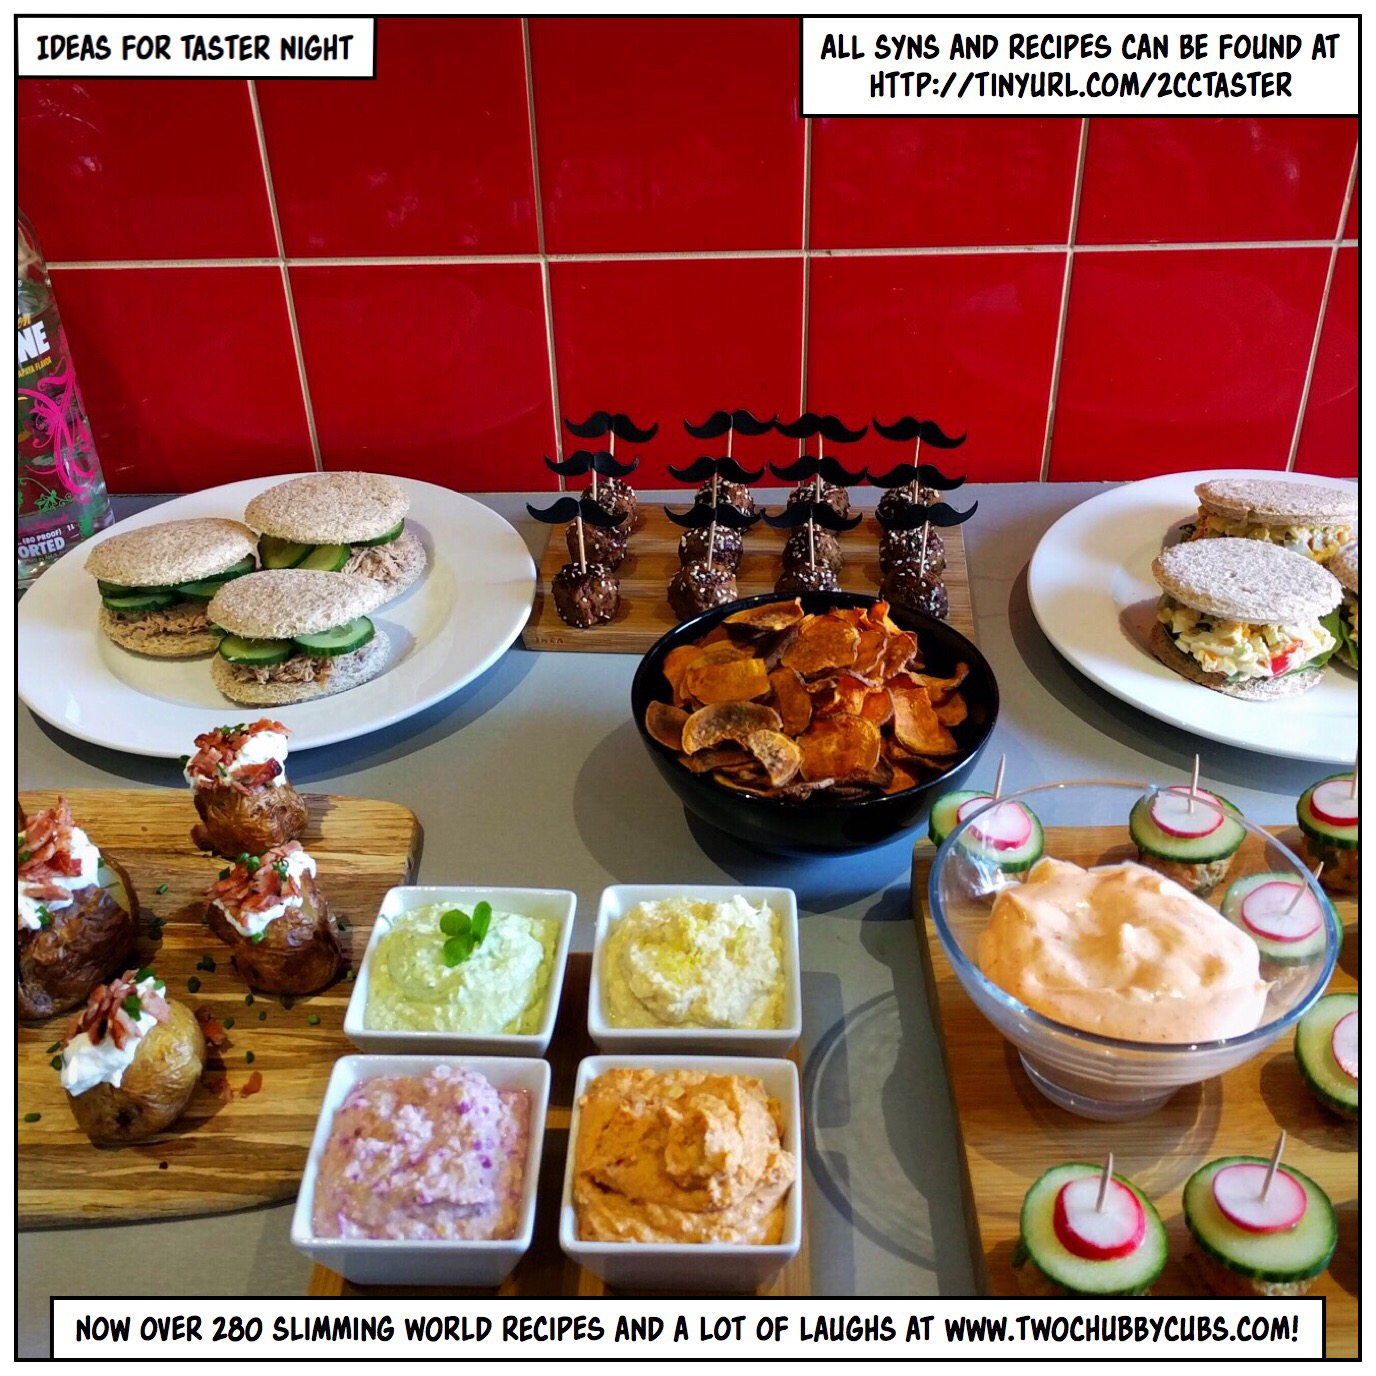 Taster night ideas for slimming world twochubbycubs forumfinder Image collections